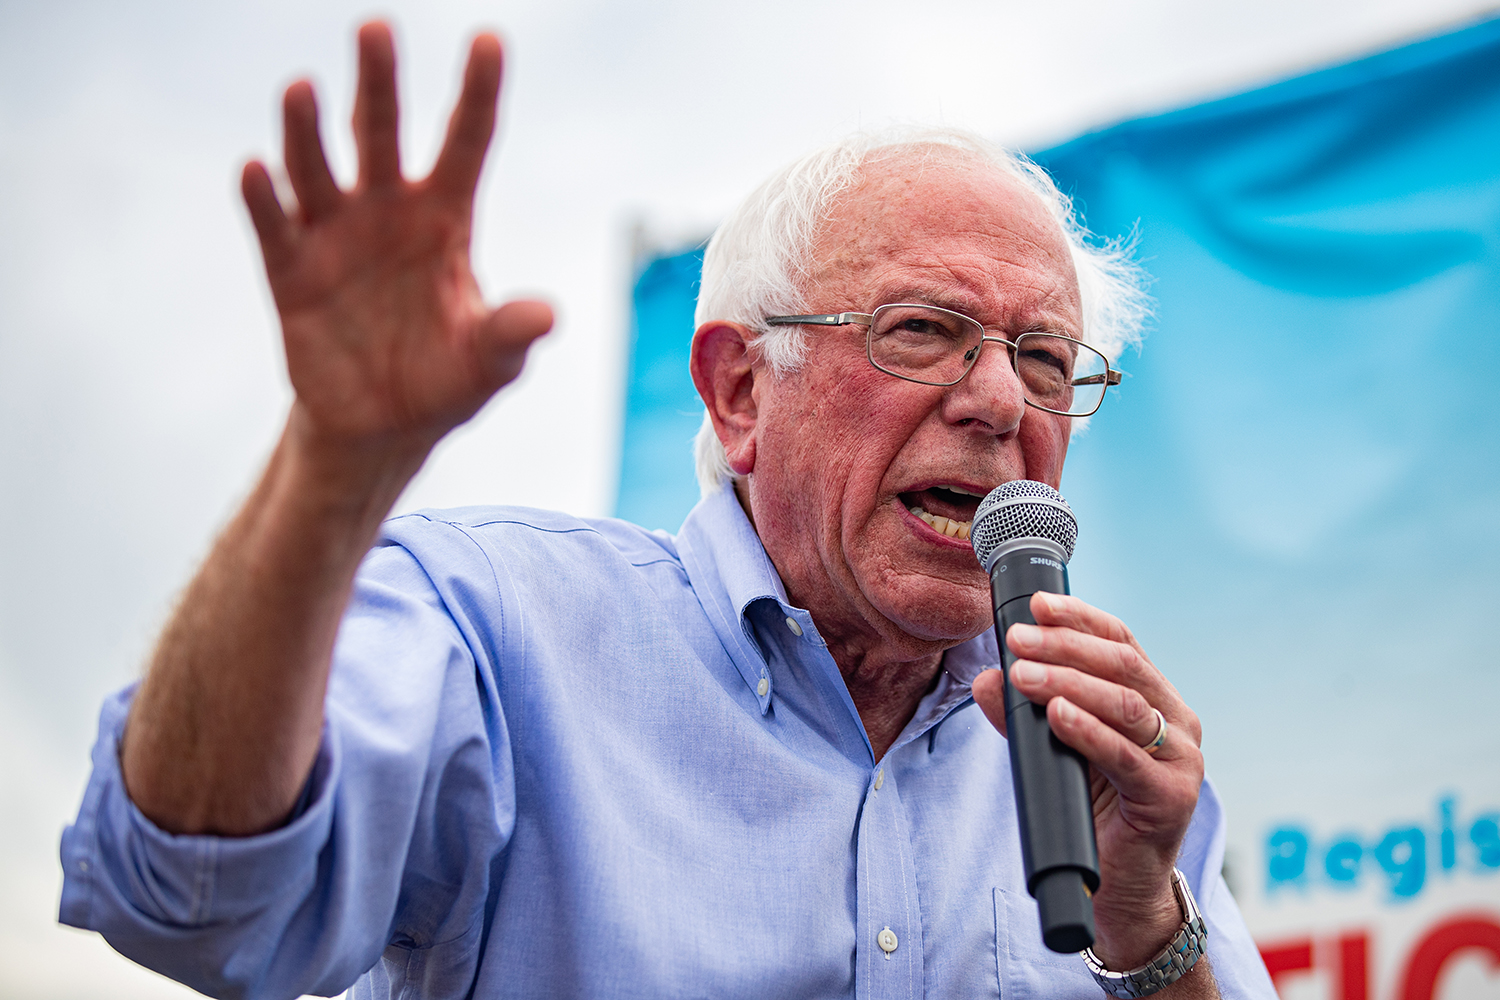 Sen. Bernie Sanders, I-VT, speaks at the Des Moines Register Political Soapbox during the Iowa State Fair in Des Moines, IA on Sunday, August 11, 2019.